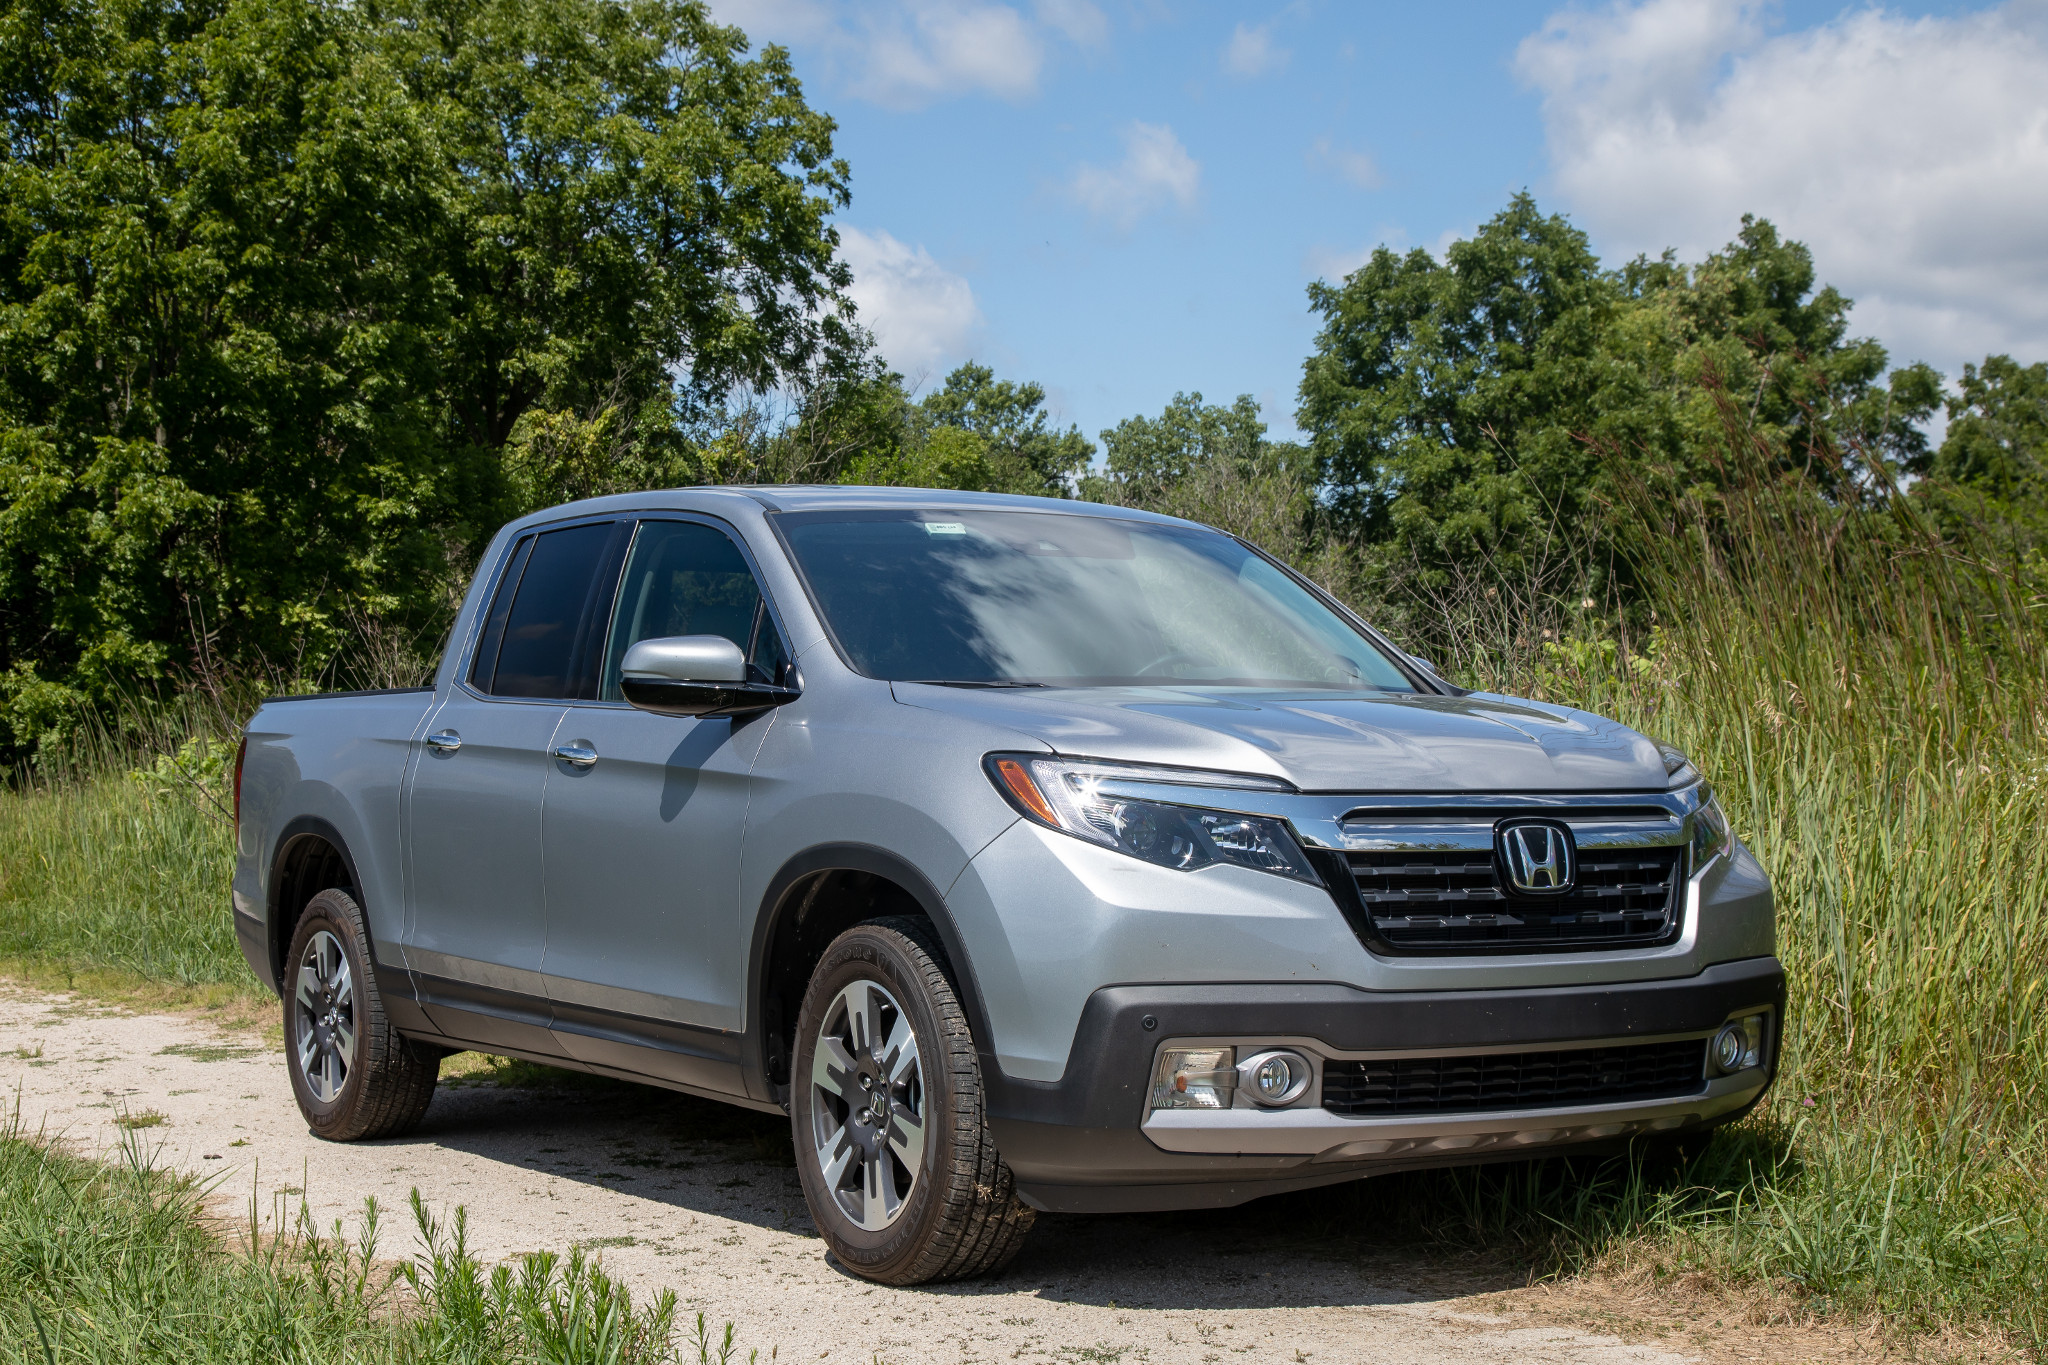 2019 Honda Ridgeline: 4 Things We Like and 2 That Give Us Pause